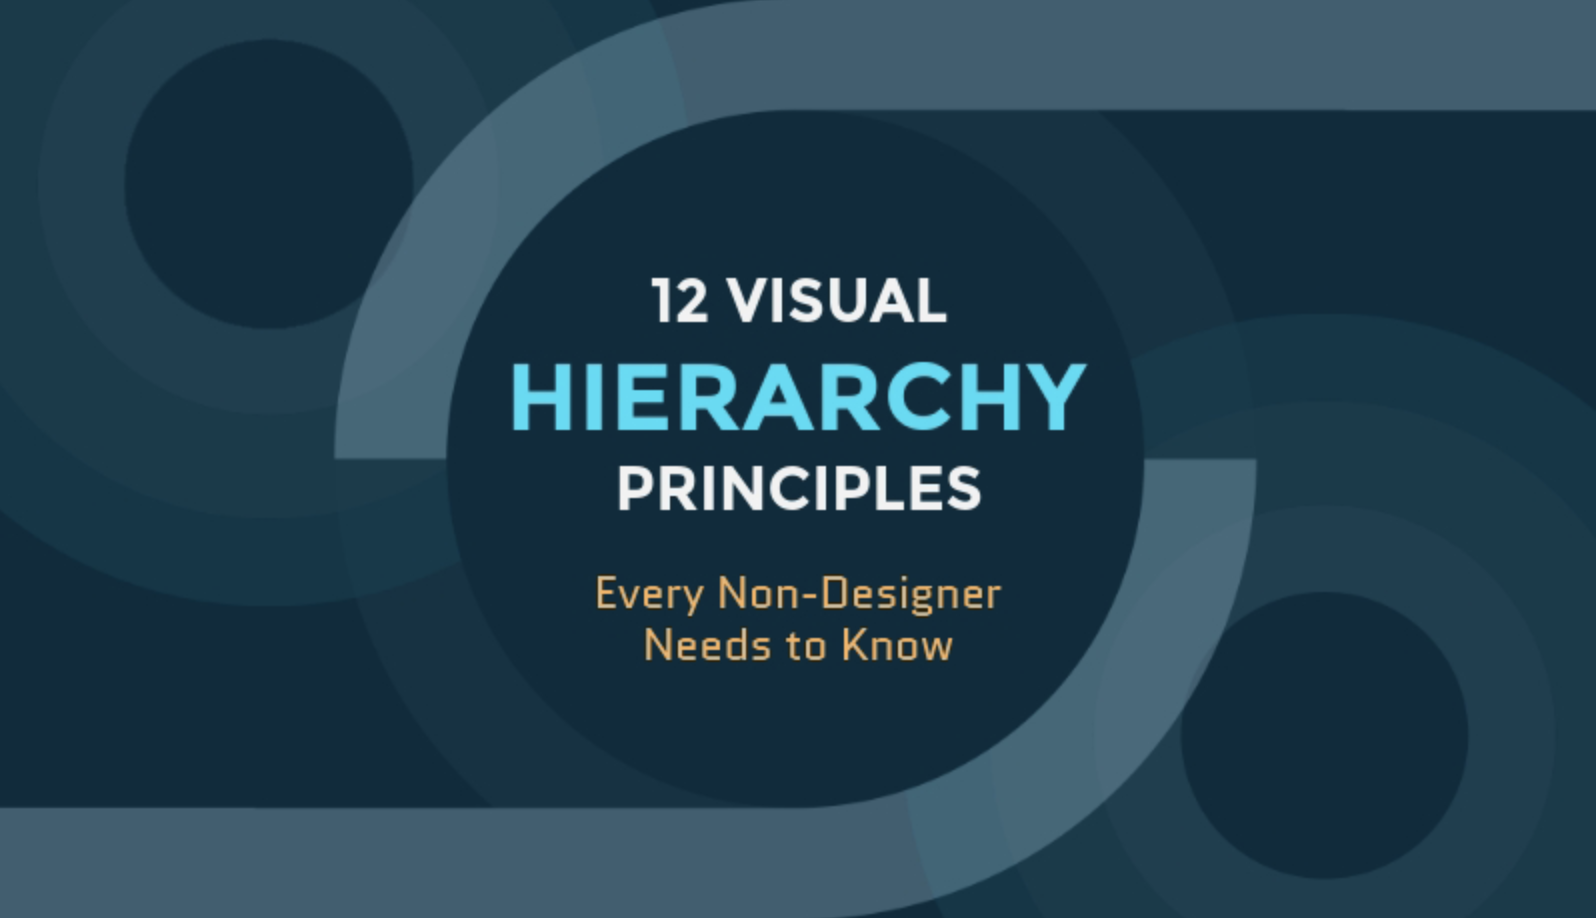 12 Essential Visual Hierarchy Principles Even Non-Designers Should Know [Infographic]